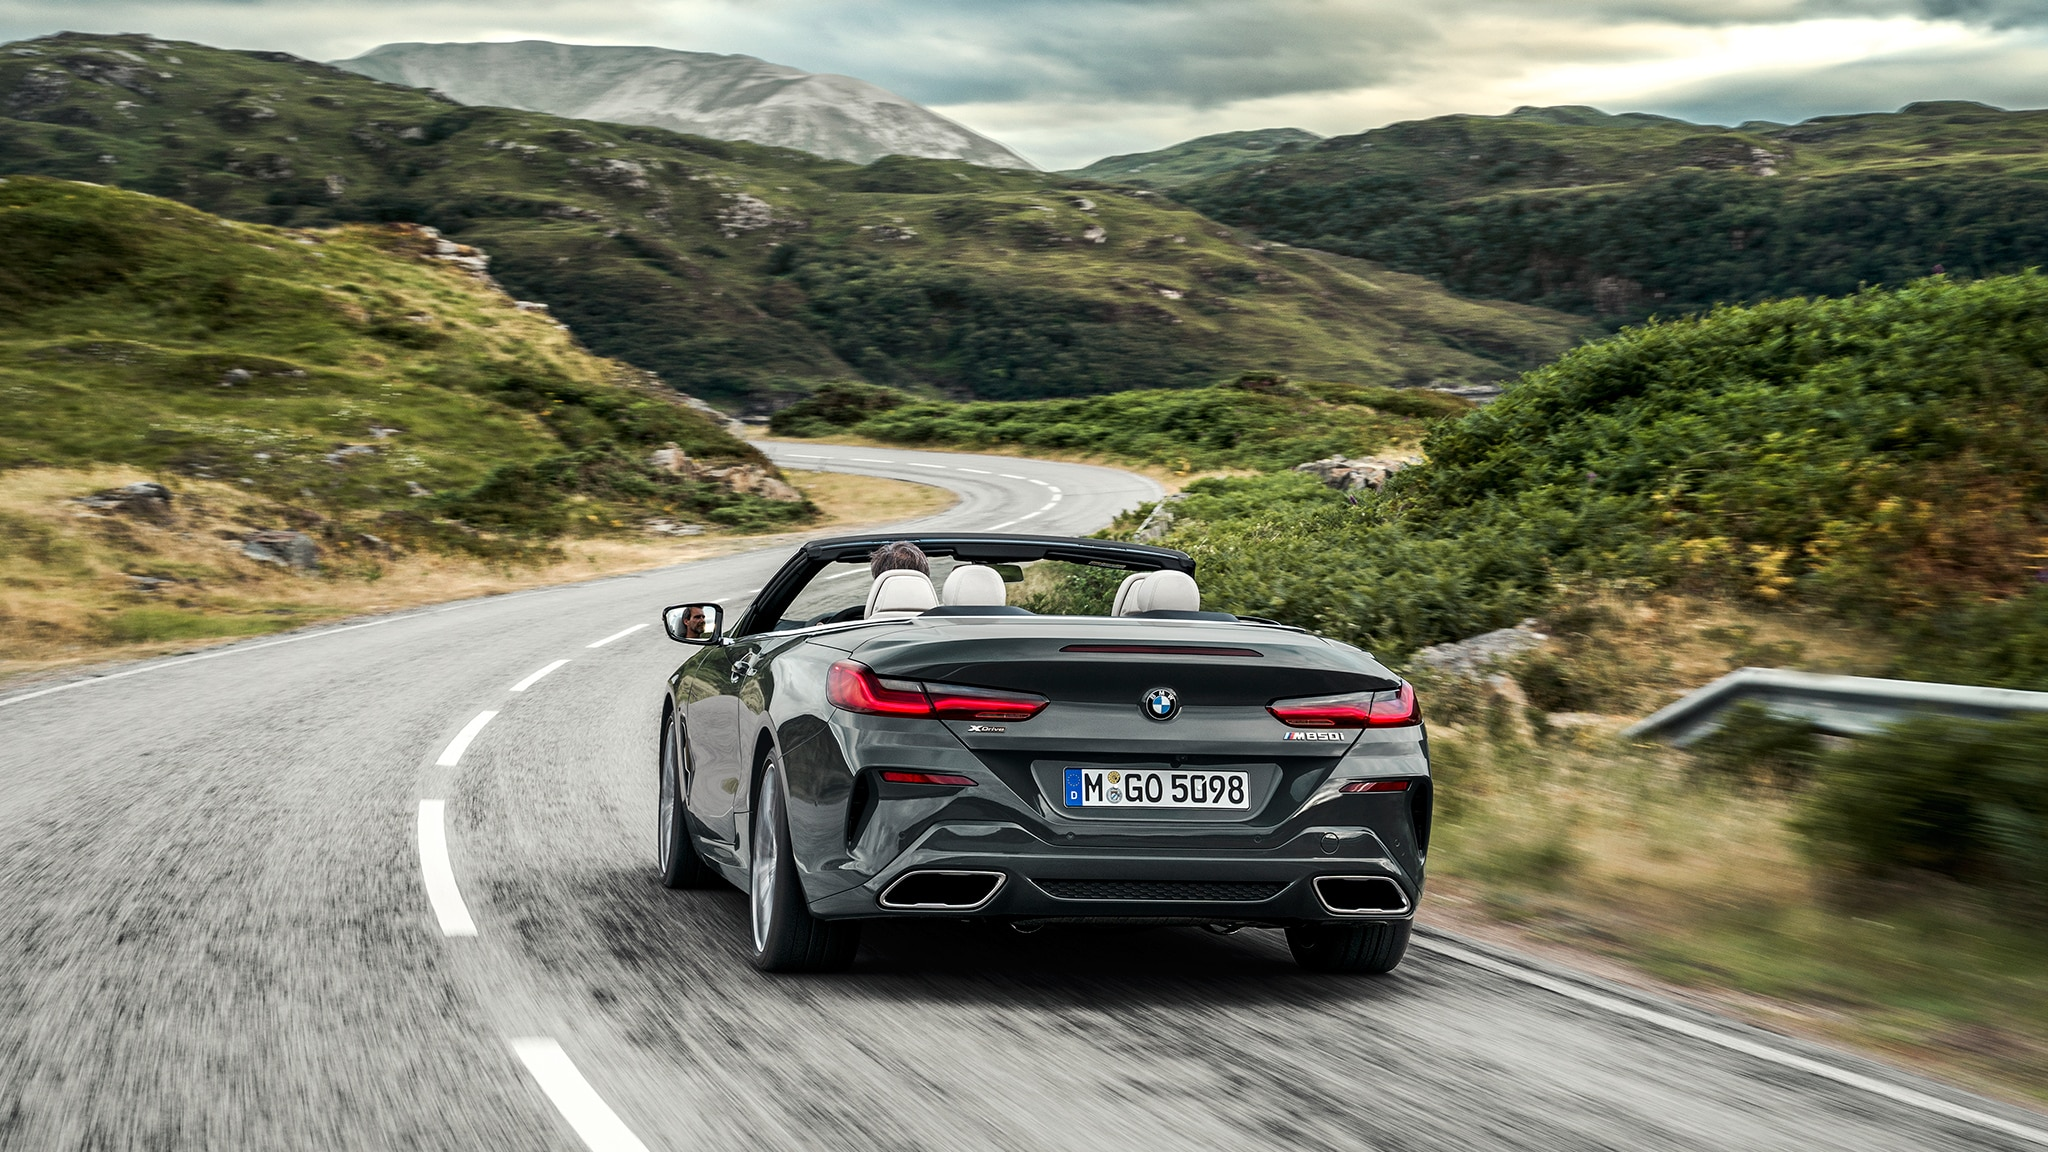 2019 BMW M850i Convertible Rear View Around Curve